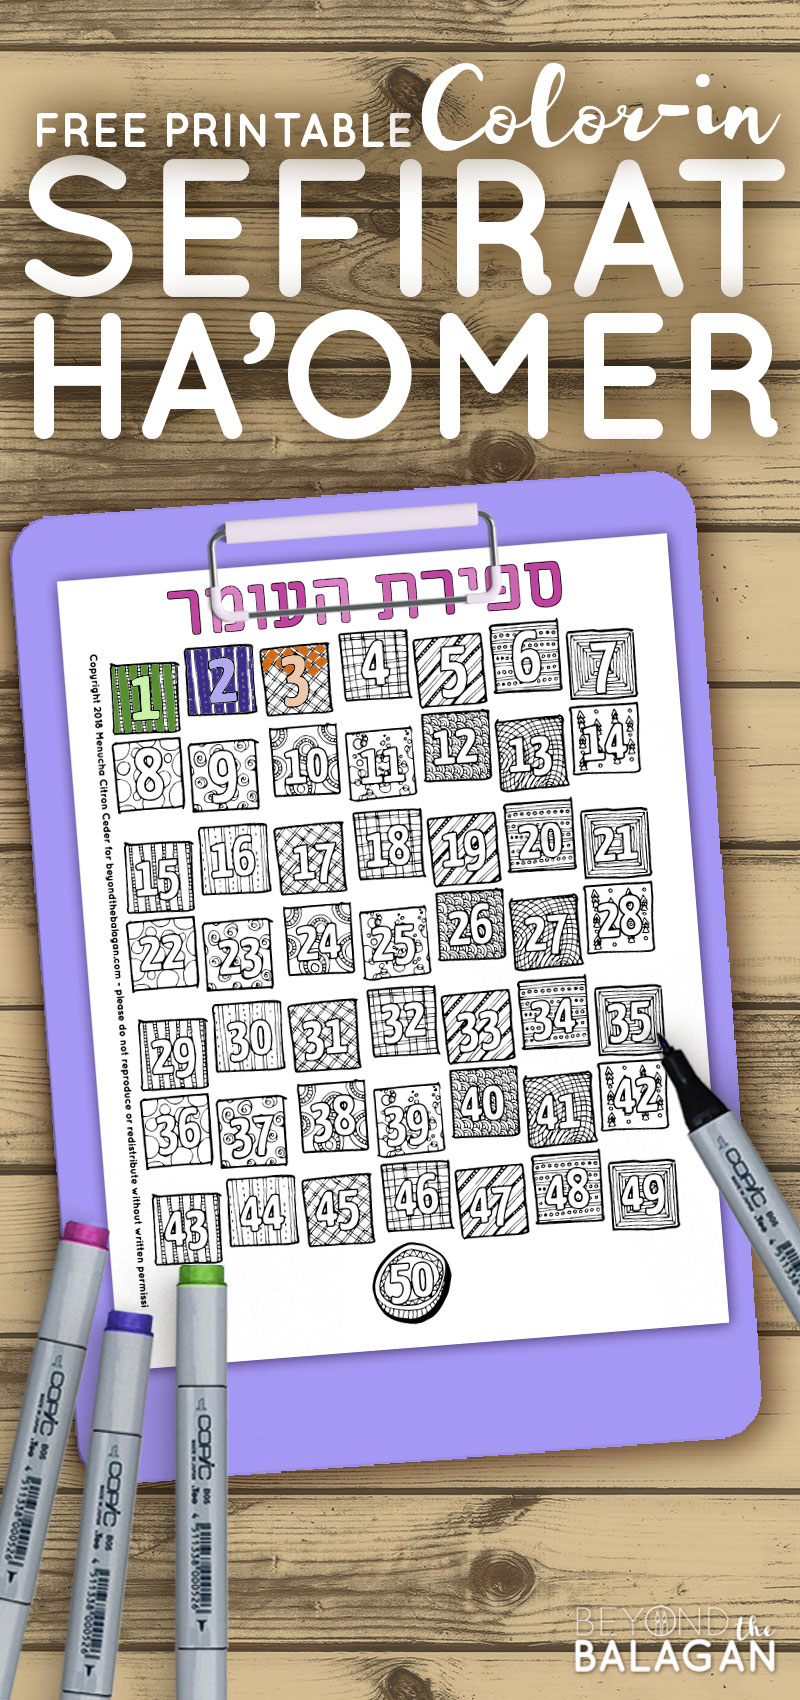 Download and print this beautiful free printable color-in sefirat haomer calendar! You'll love this cool countdown for the Omer starting from #Passover #beyondthebalagan